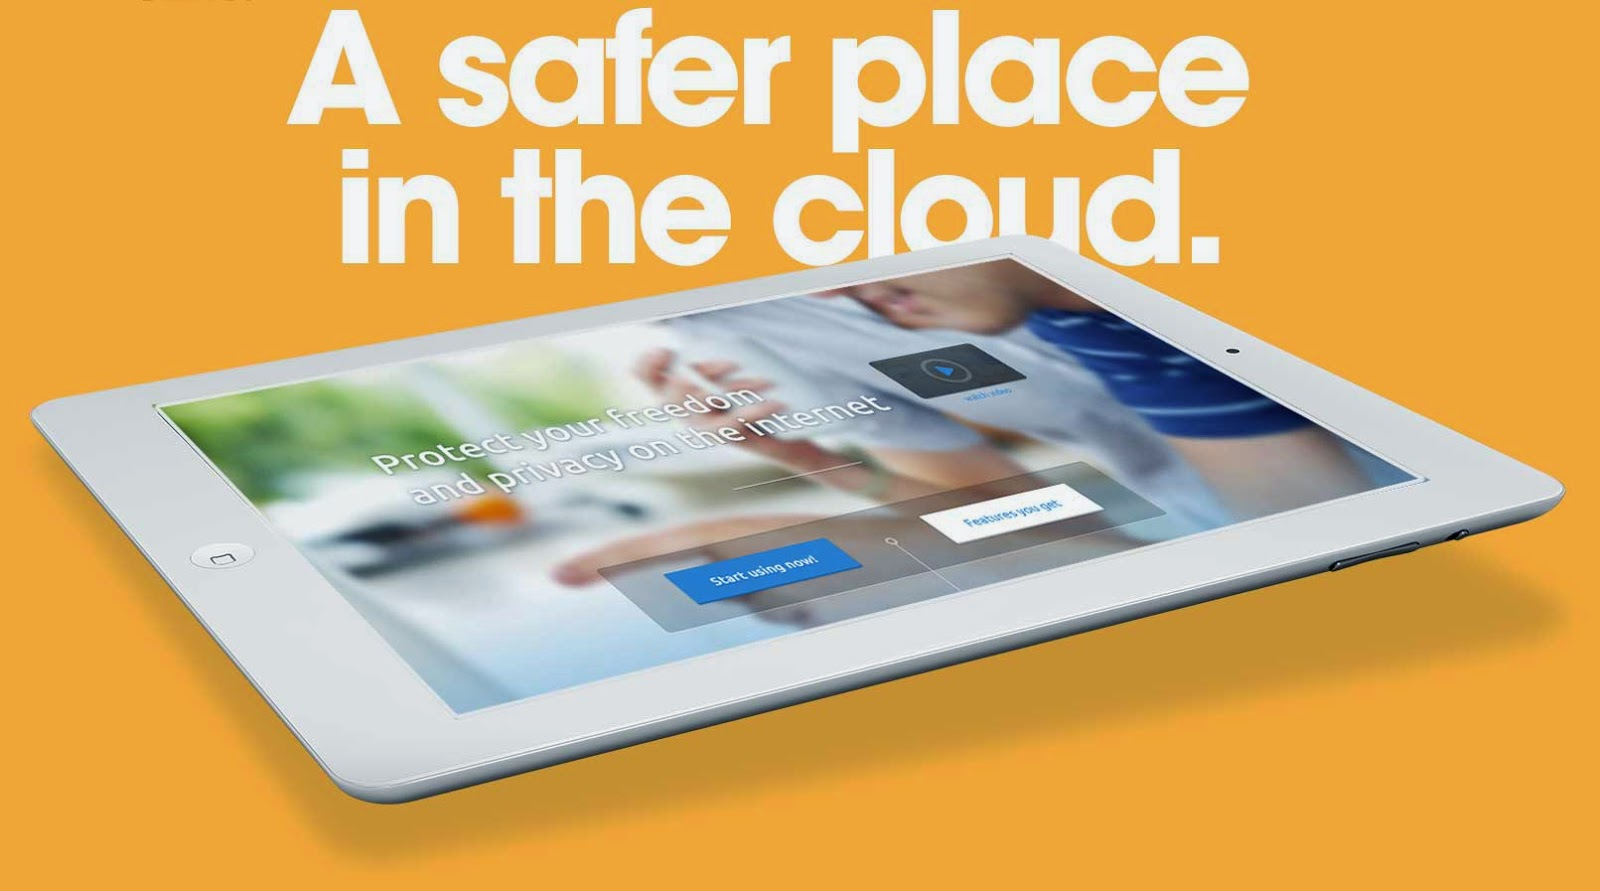 Safer Place in the Cloud with @HashDashDigital via #hshdsh also #hashdash